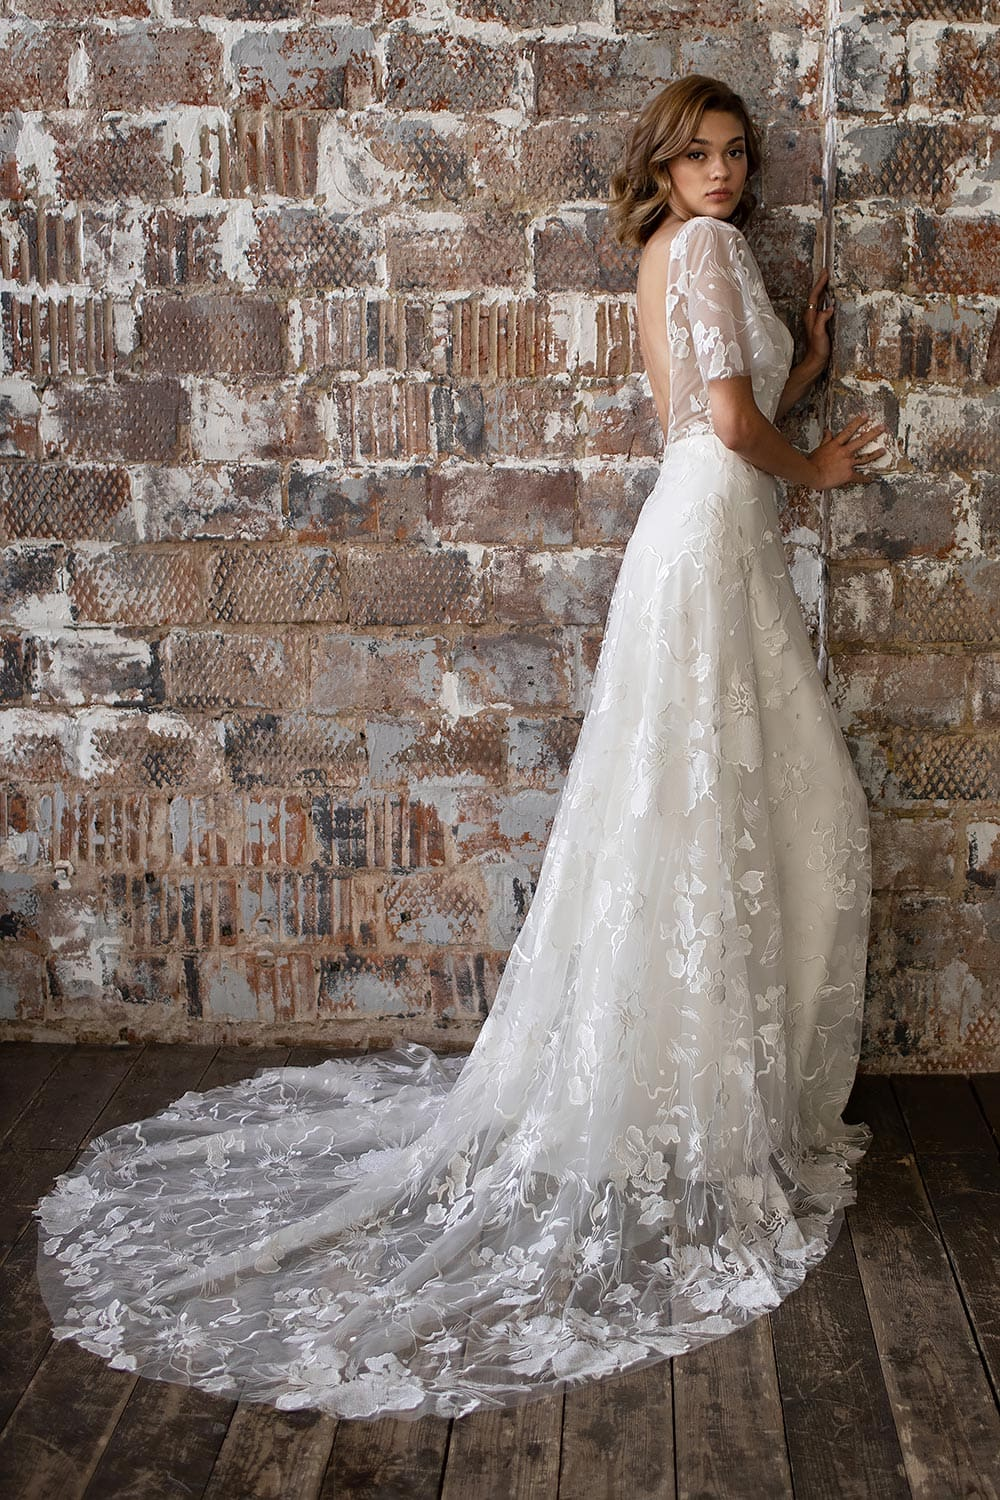 boho wedding dress shops near me boho wedding dress uk boho wedding dresses london wedding dress a line 6